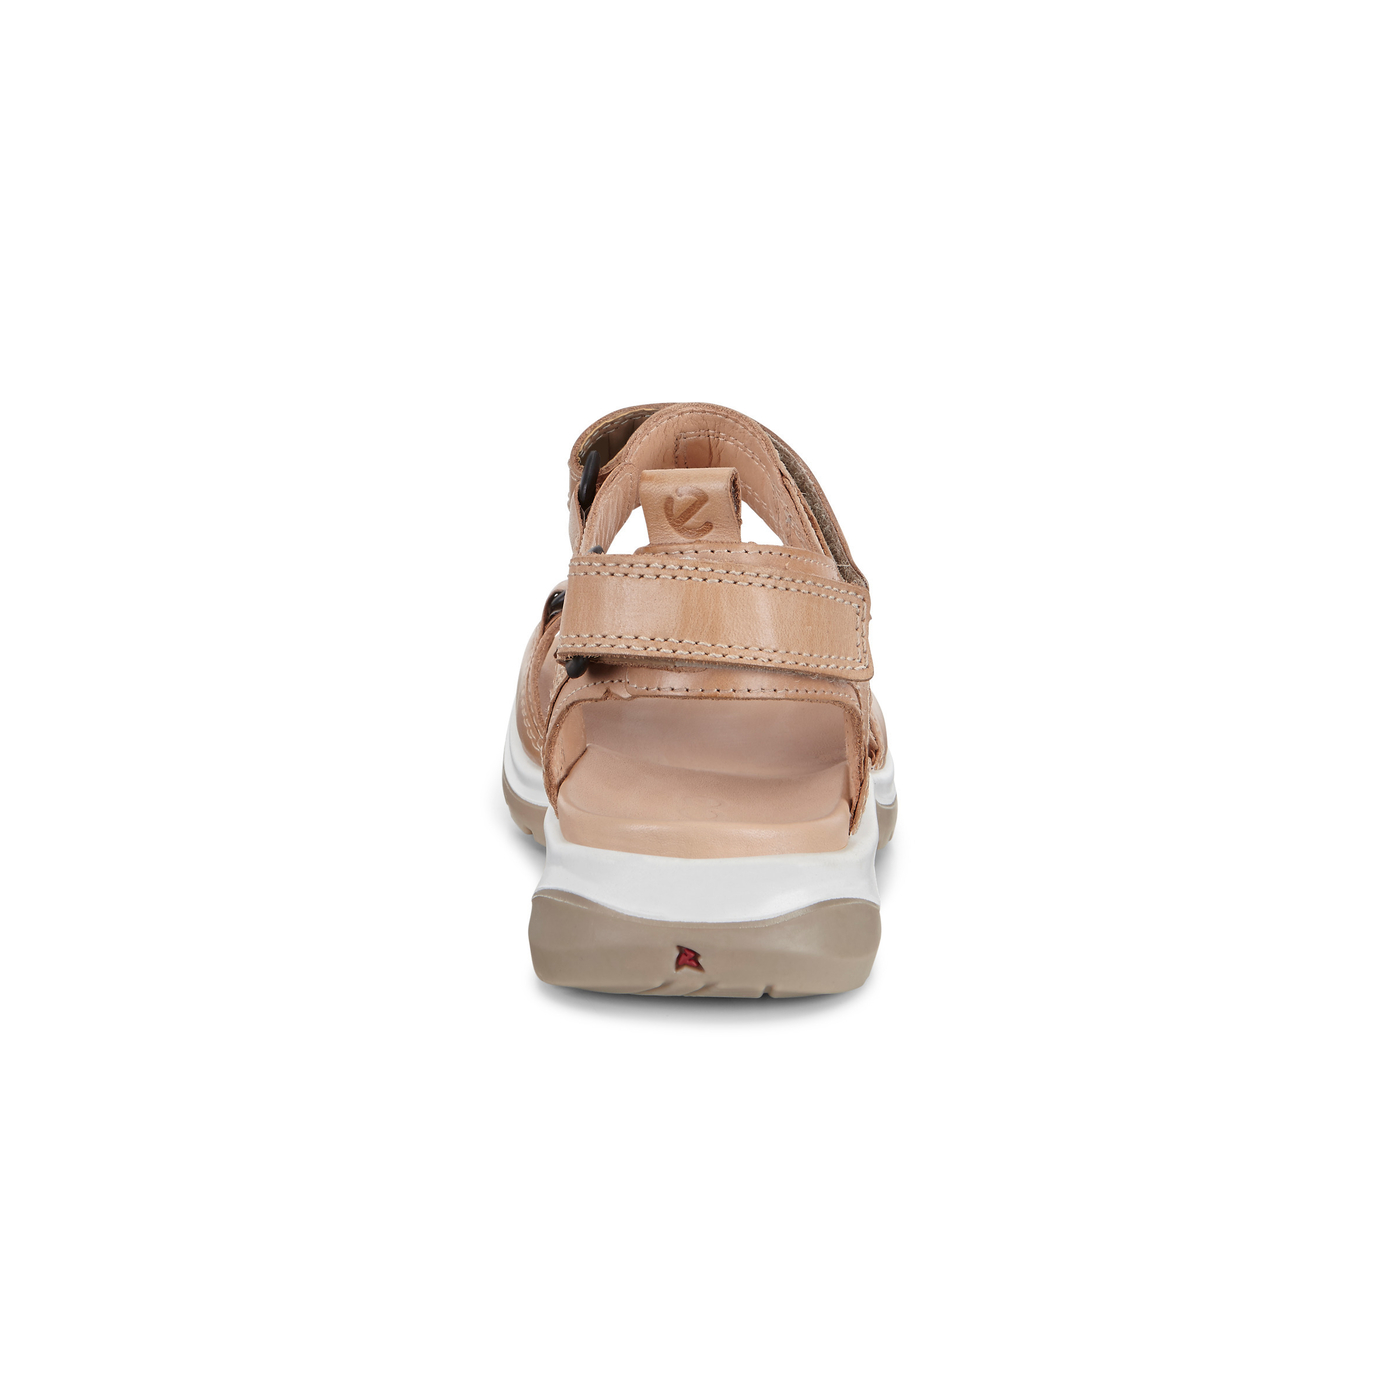 ECCO OFFROAD 2.0 Womens Sandal